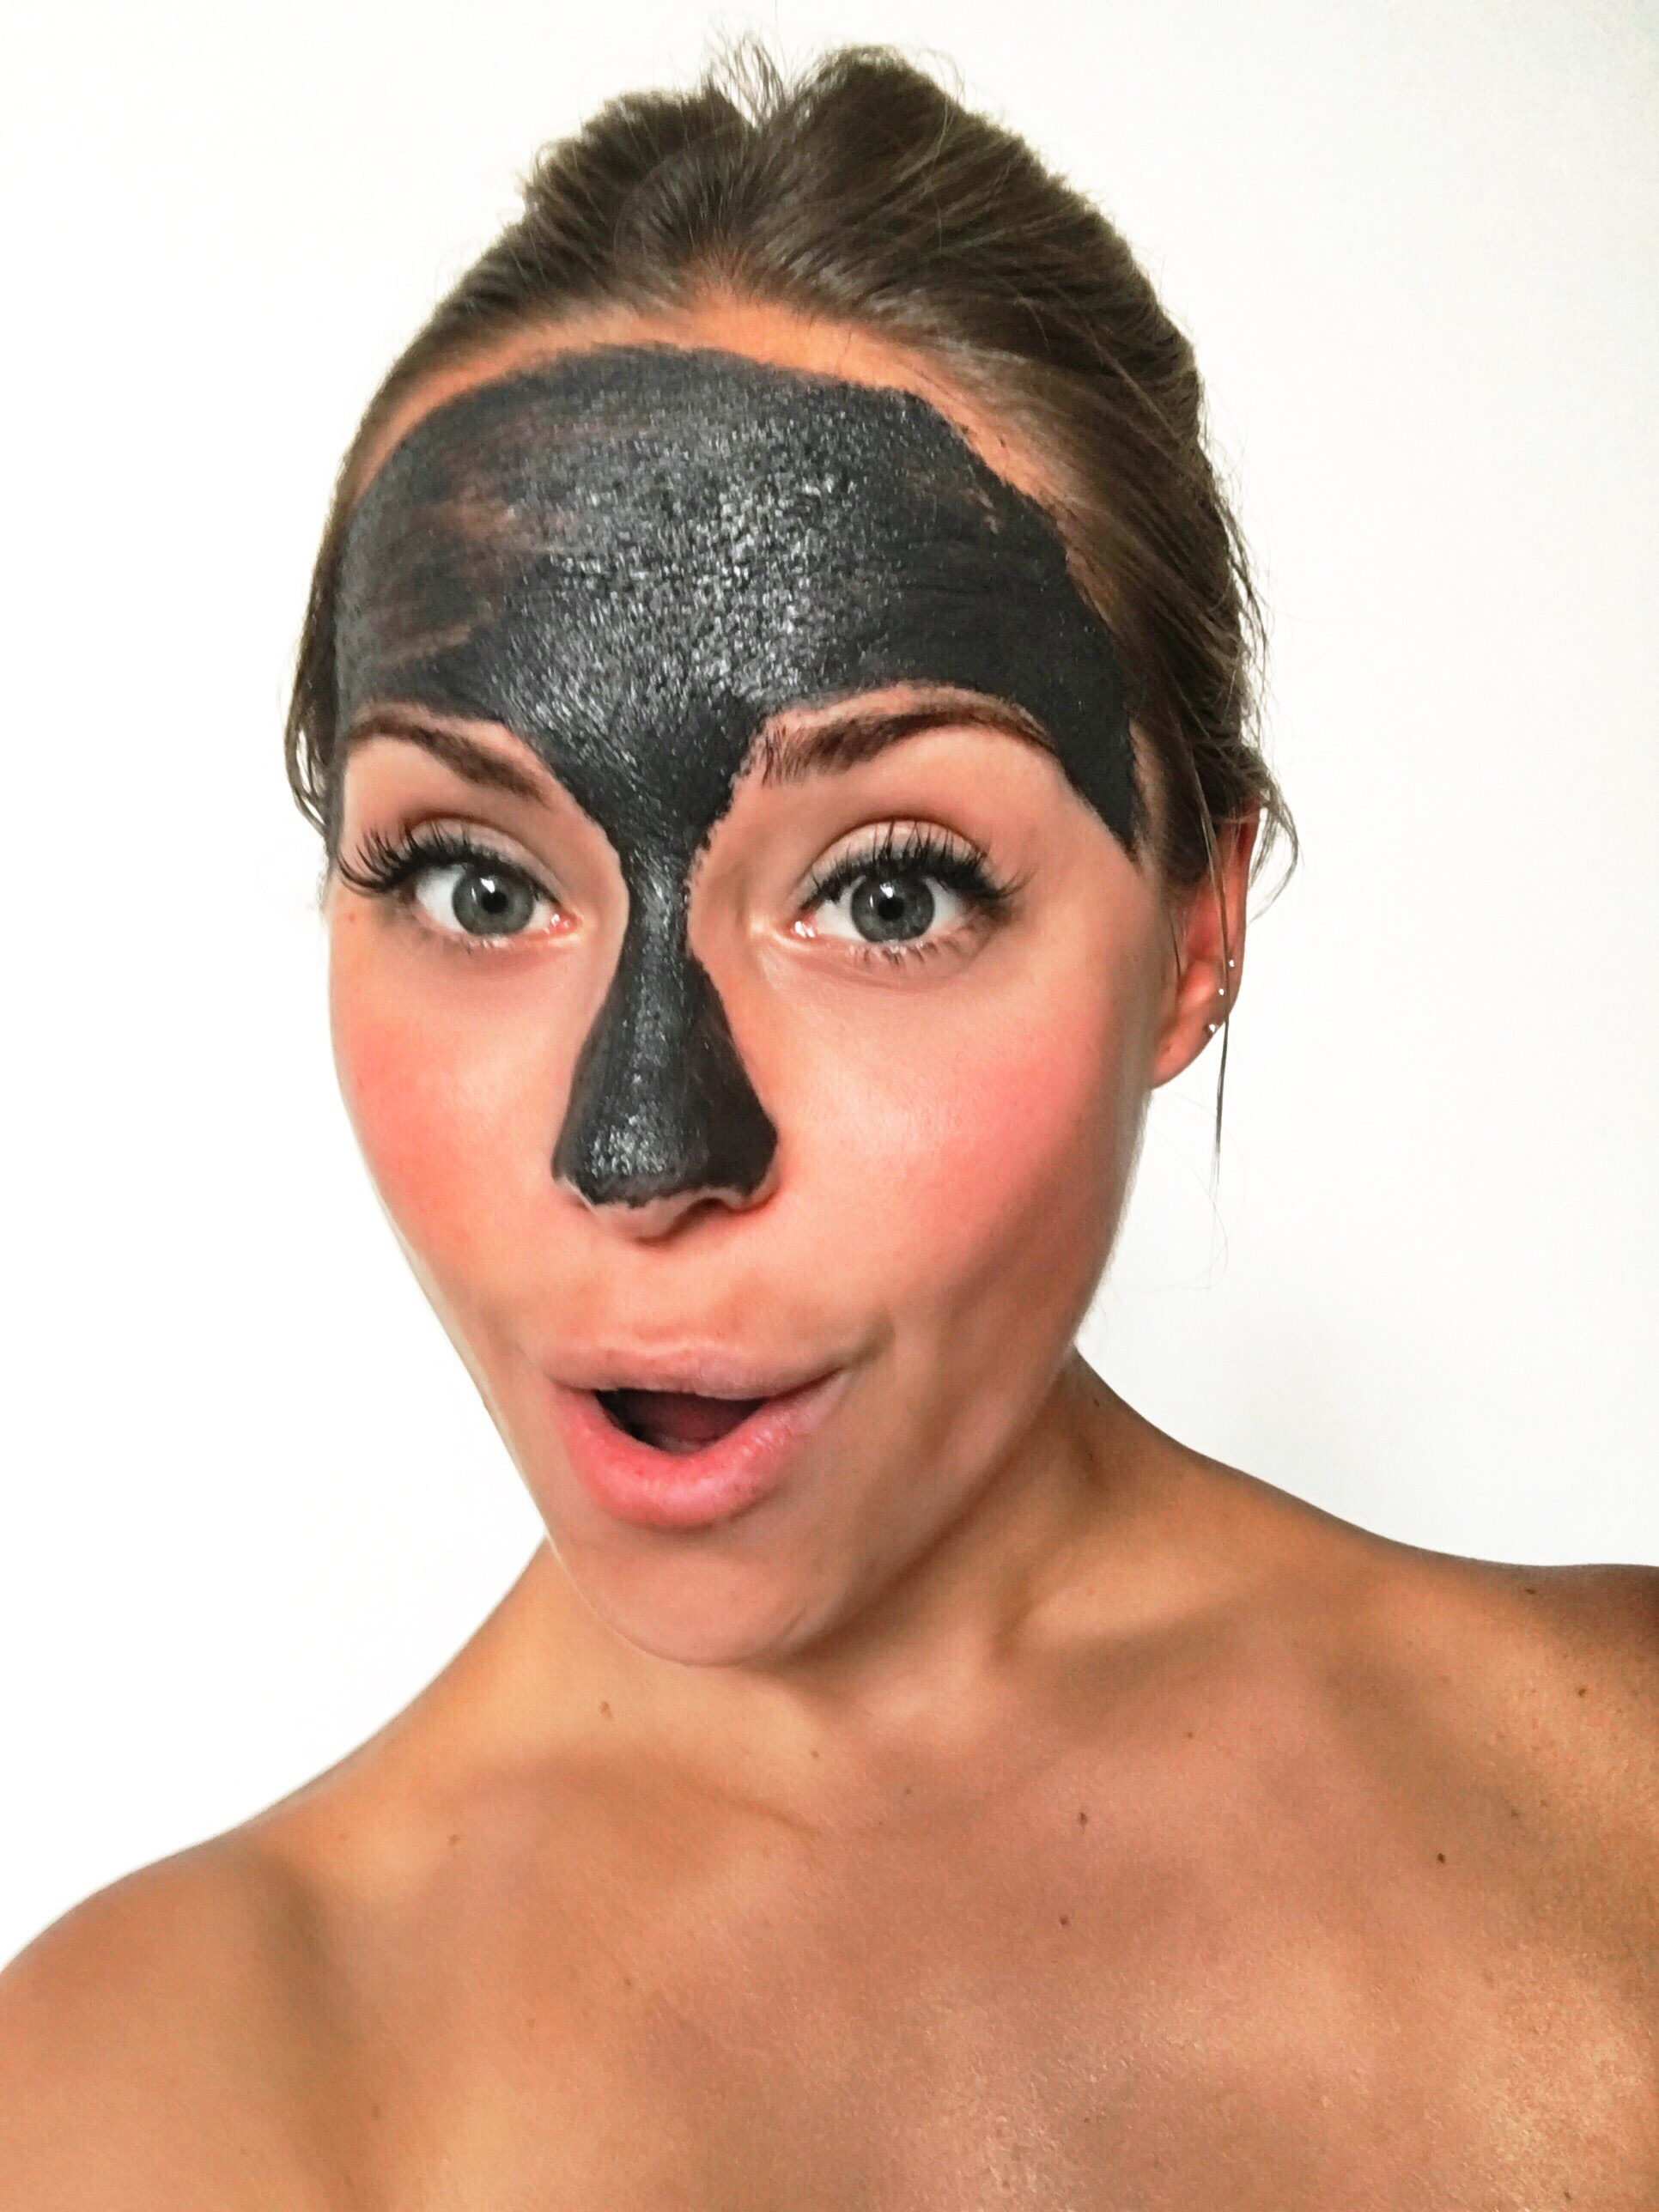 """Step 1: EXTRA VITALITY EXFOLIATING MASK– Exfoliates and Illuminates the Skin. - An exfoliating mask that provides the heart of skin cells with trace elements extracted from precious and semi-precious stones. The combination of these stones, together with activated carbon and volcanic clay, cleanses and renews, revealing luminous skin full of vitality.Its deep gray color, its fresh, creamy texture, and its delicate aroma make it an experience for all senses. It's suitable for all skin types.Indicated forCleansing, regenerating and revitalizing all skin types, except for the very sensitive ones. Increases skin luminosity and Refines the skin's texture.FormulaVolcanic clay regulates disorders of """"imperfect"""" skin.Active Carbon cleanses the skin in depth and reduces the size of pores.Hematite helps re-densify the skin and recover its firmness.Smithsonite favors natural repair.Diamond, its extract in micronized powder form stimulates the skin's defenses."""